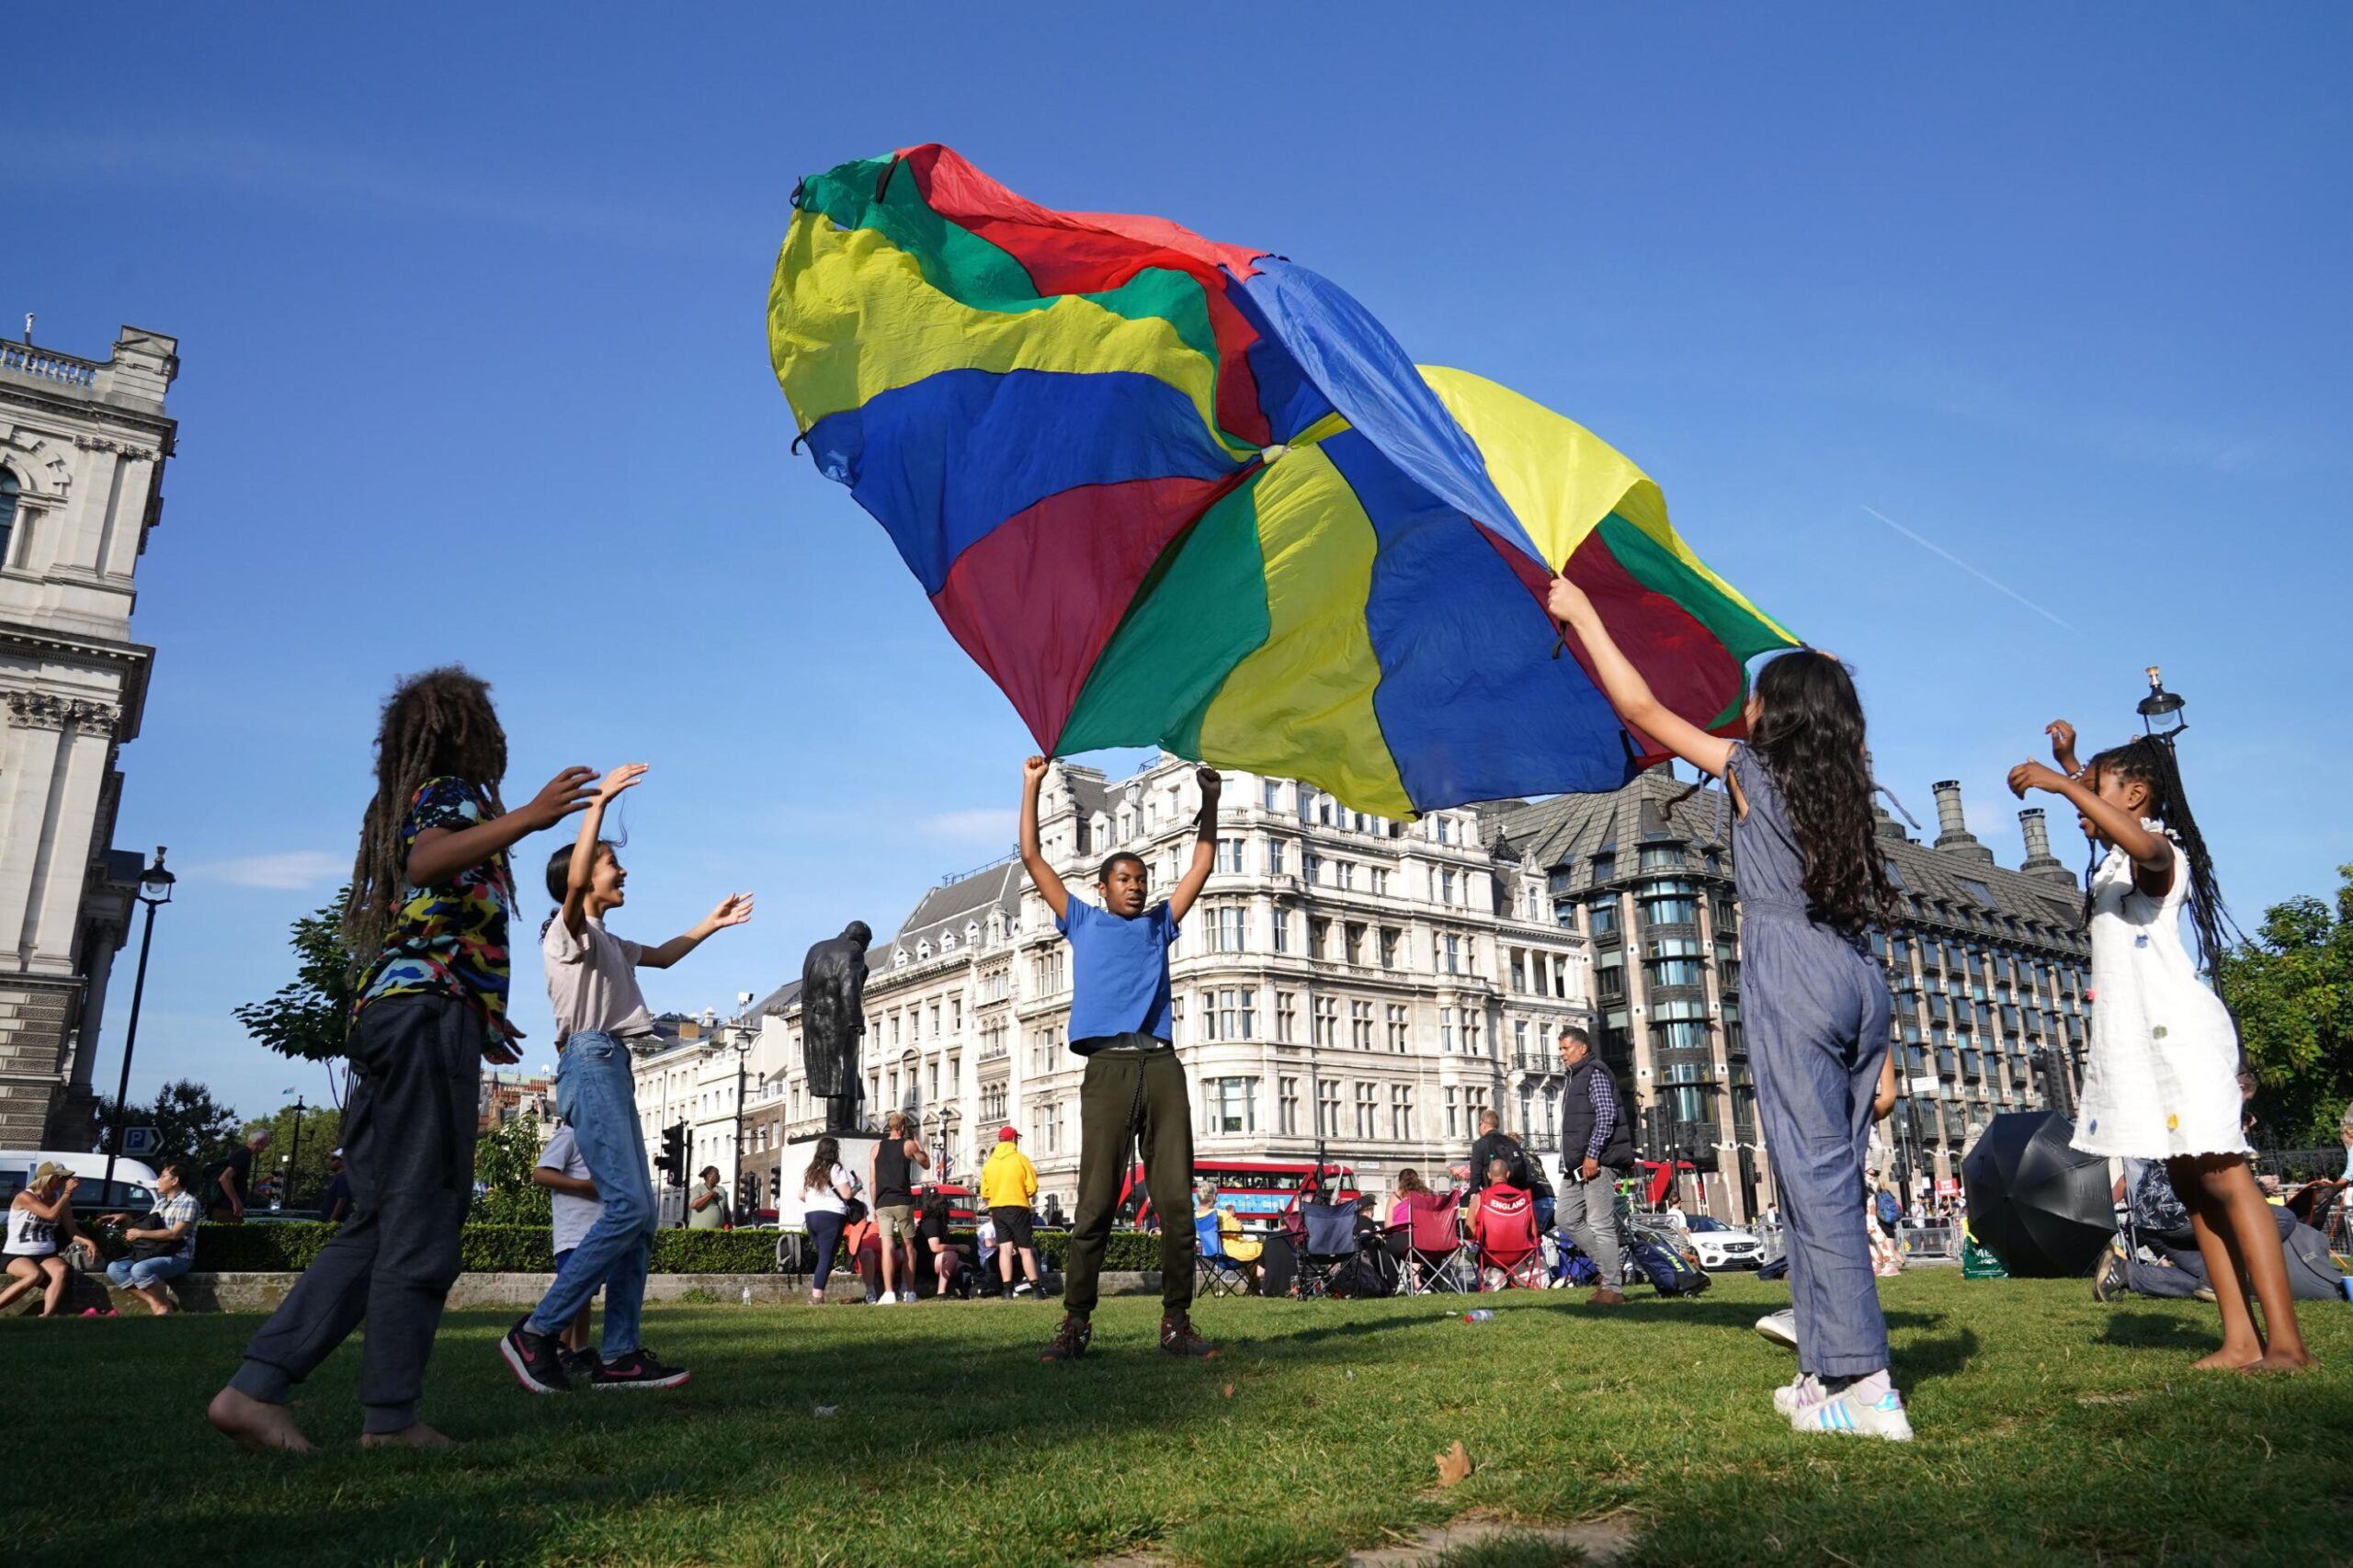 <i>Stefan Rousseau/PA Images/Getty Images</i><br/>Children to gather at Parliament Square in London in early September to read their Letters to the Earth